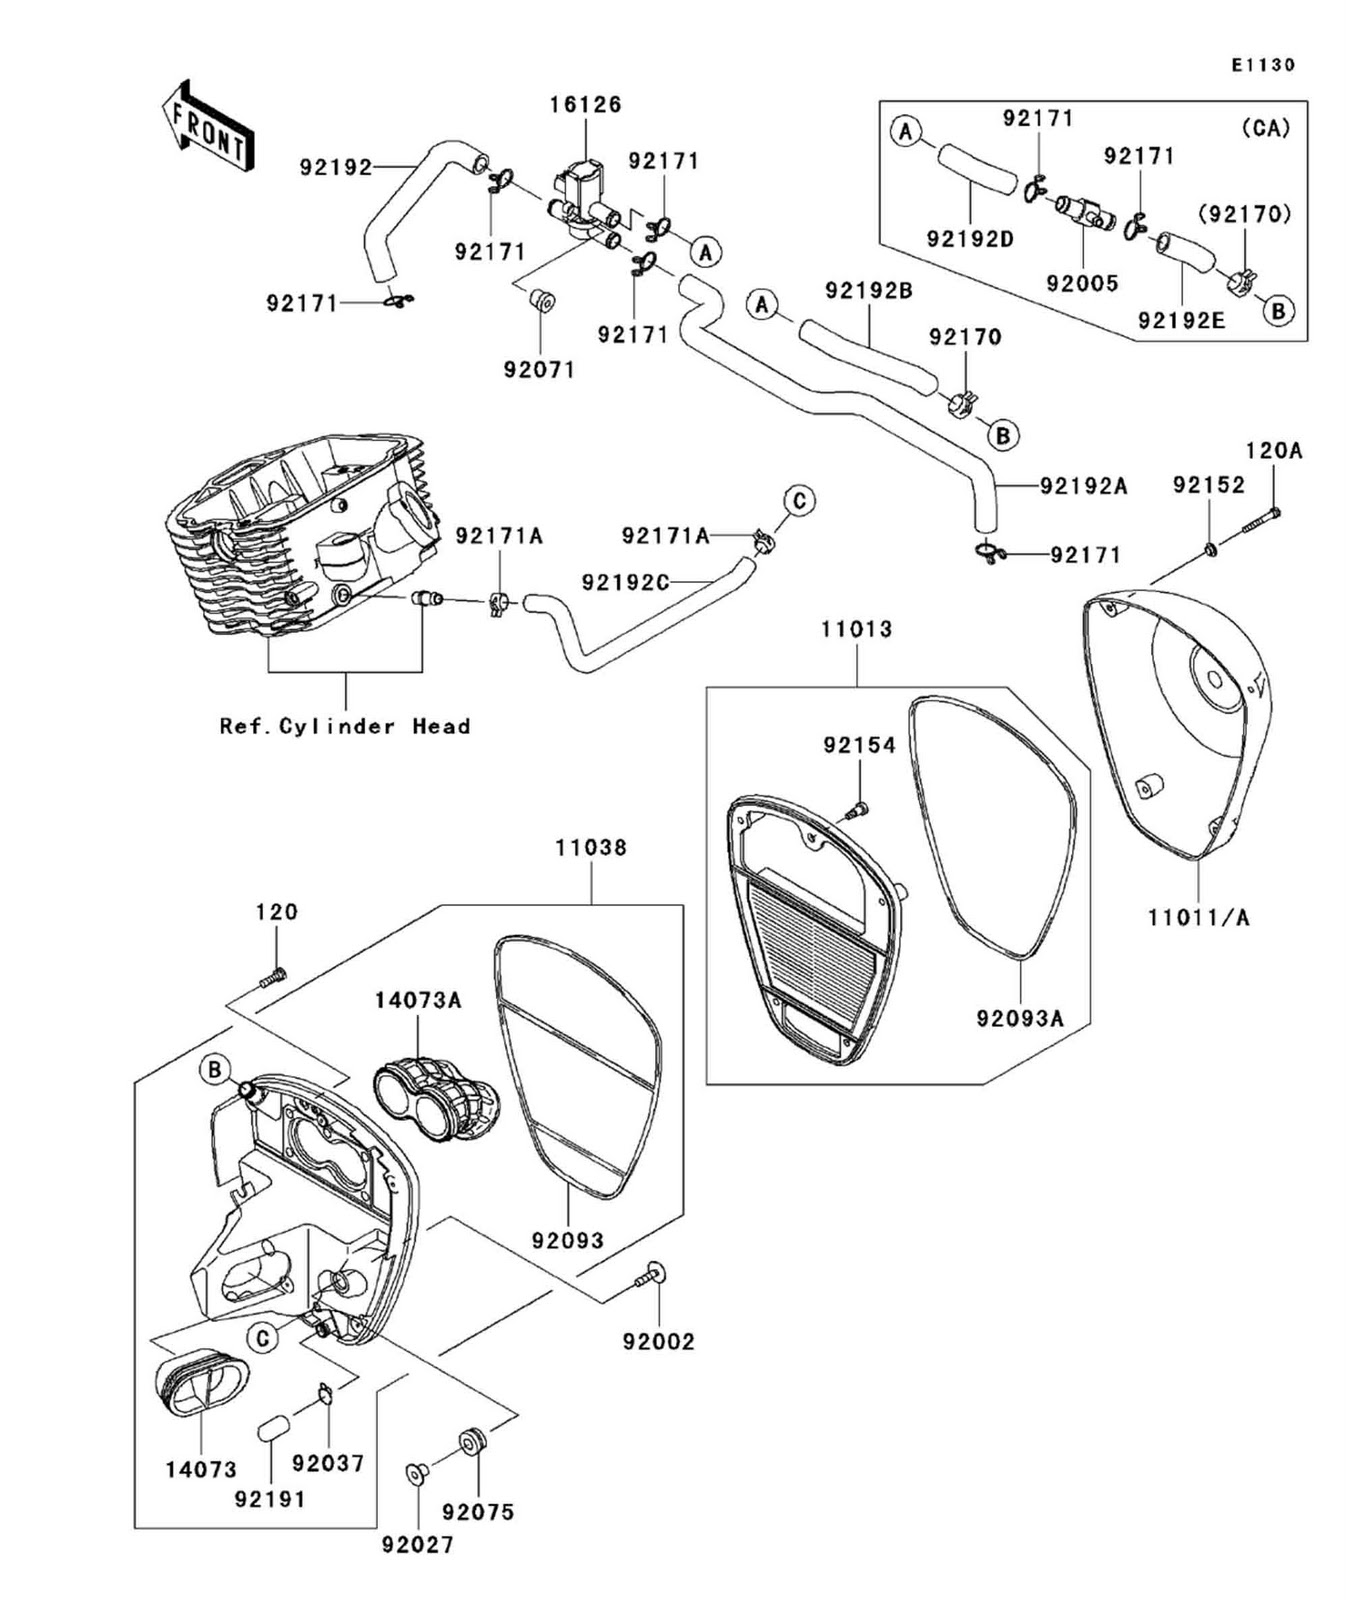 Kawasaki Vulcan 900 Wiring Diagram For A Motorcycle | Wiring ... on